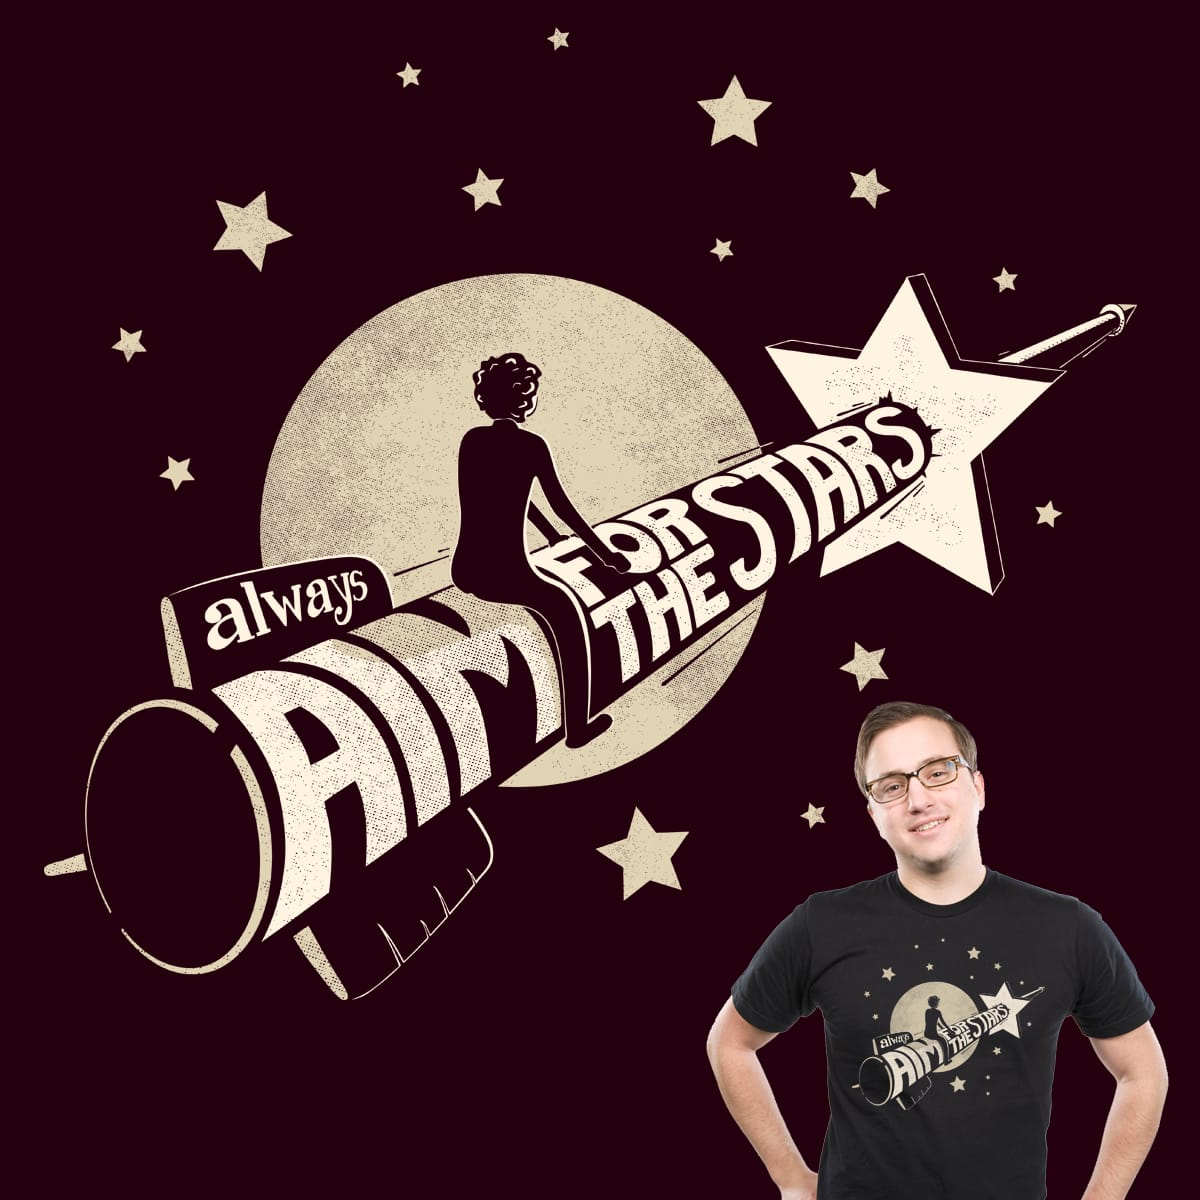 Aim for the Stars by snoopy1973 on Threadless